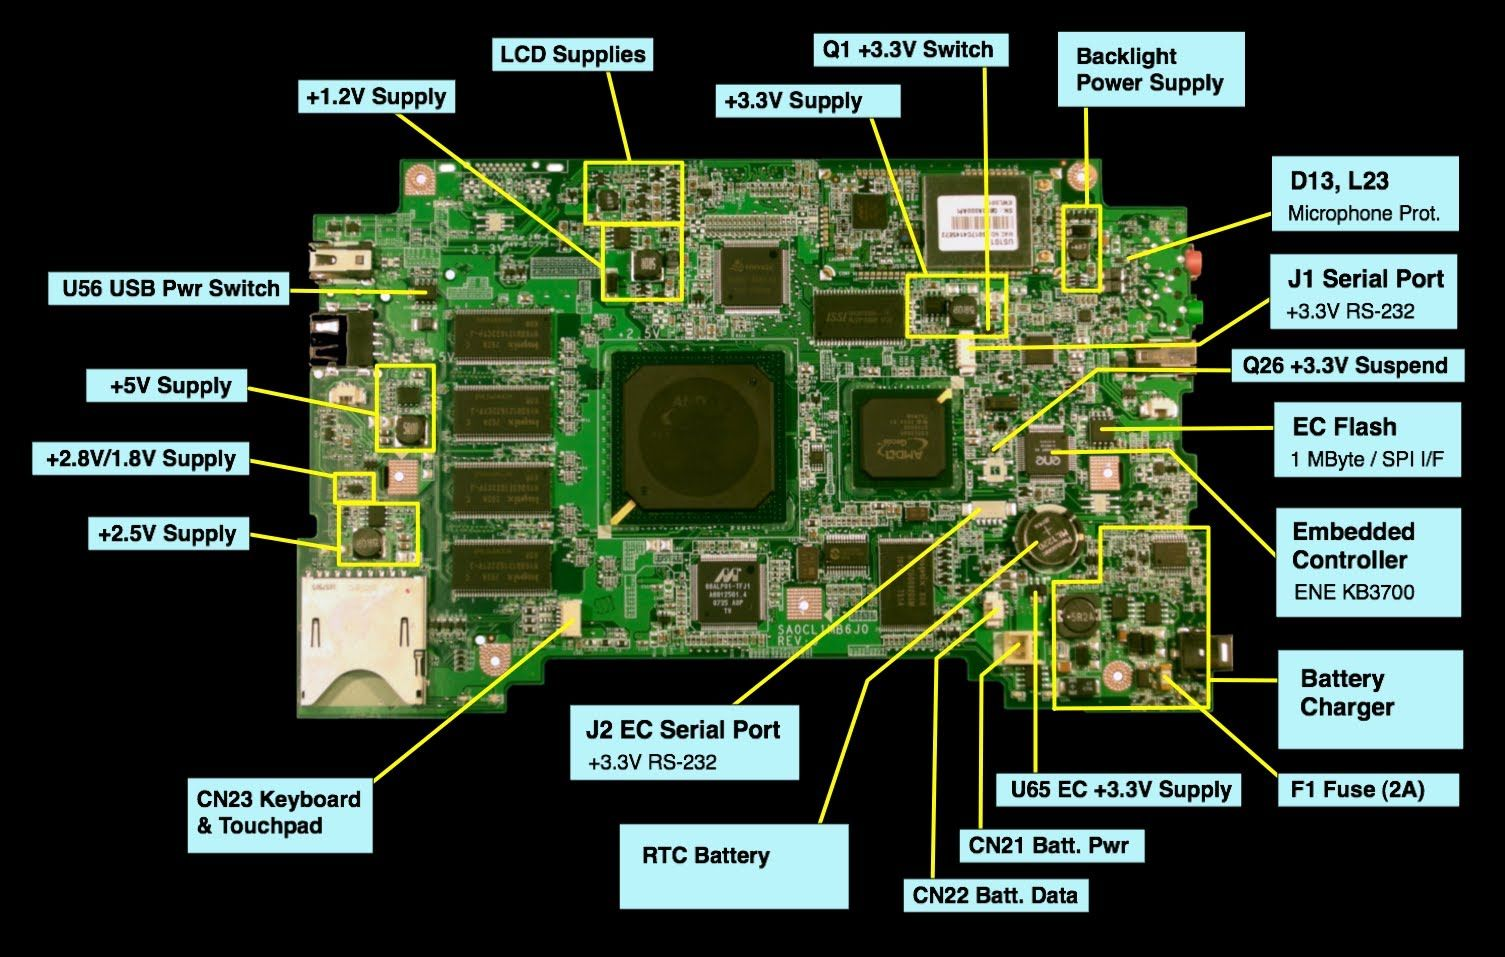 small resolution of diagram showing the inside components of a laptop battery stockdiagram showing the internal parts of computer